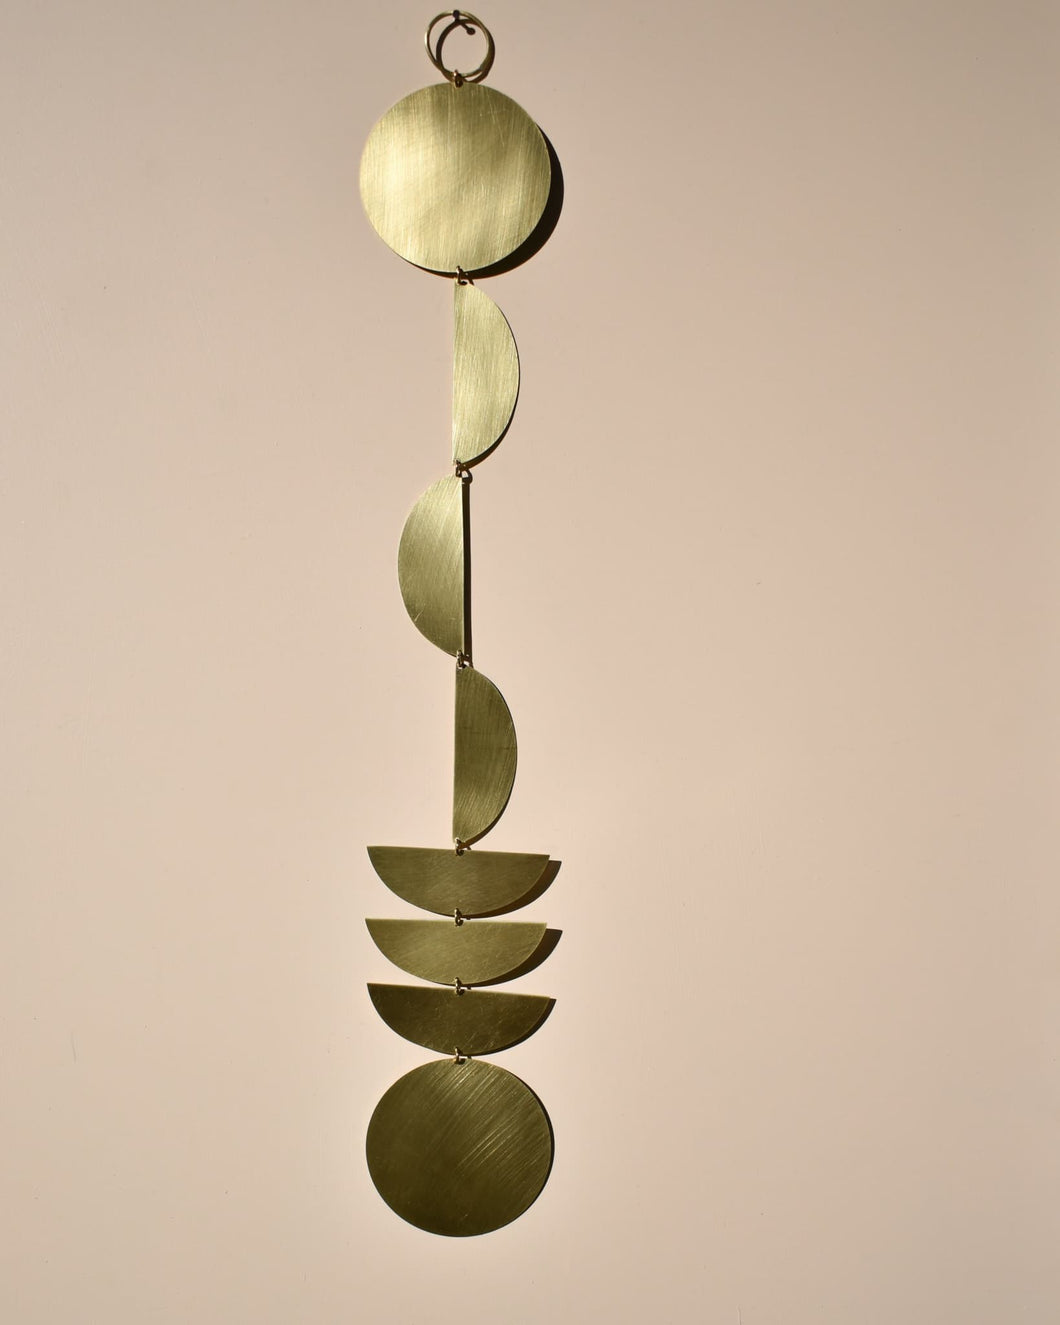 Callisto Wall Hanging in Brass - Wall Decor